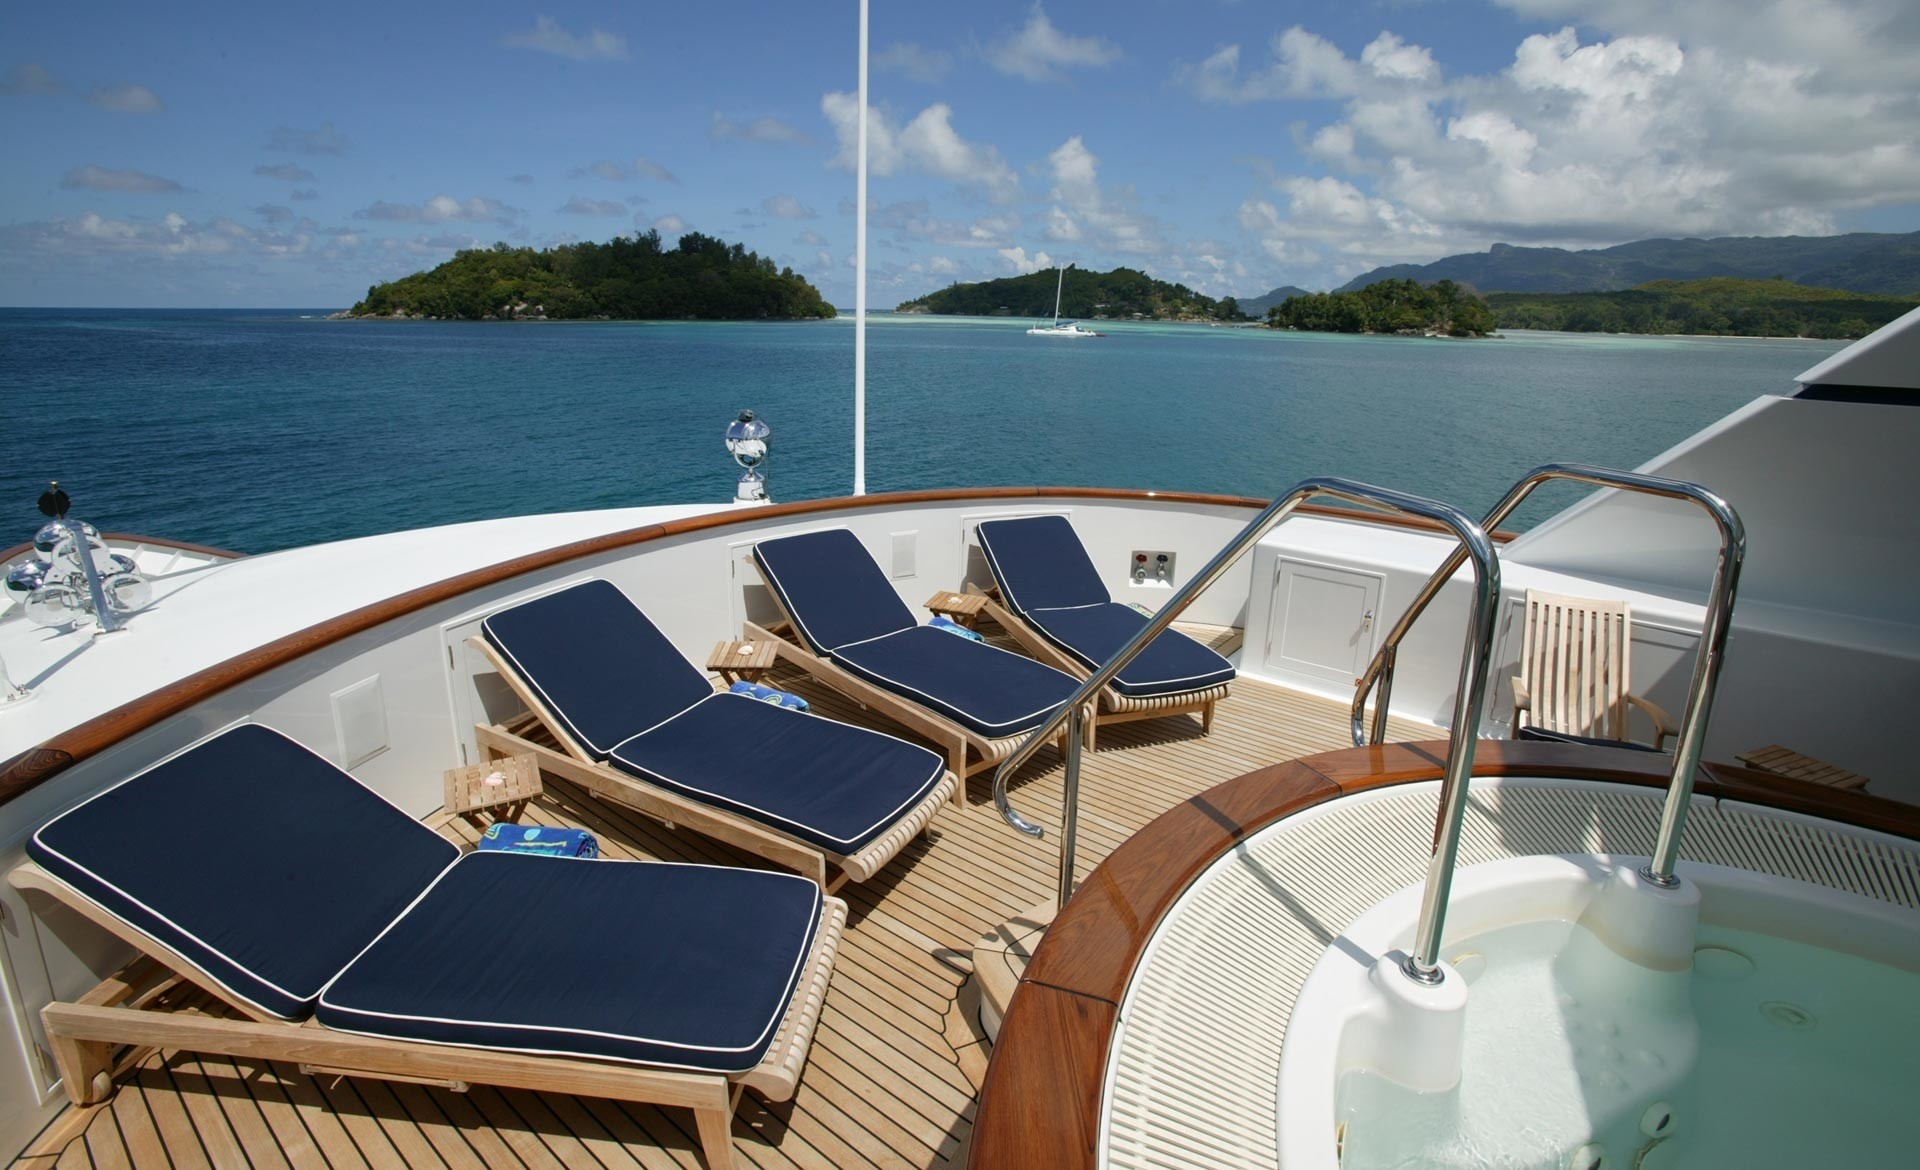 Jacuzzi Pool With Sunshine Lounging Aboard Yacht TELEOST